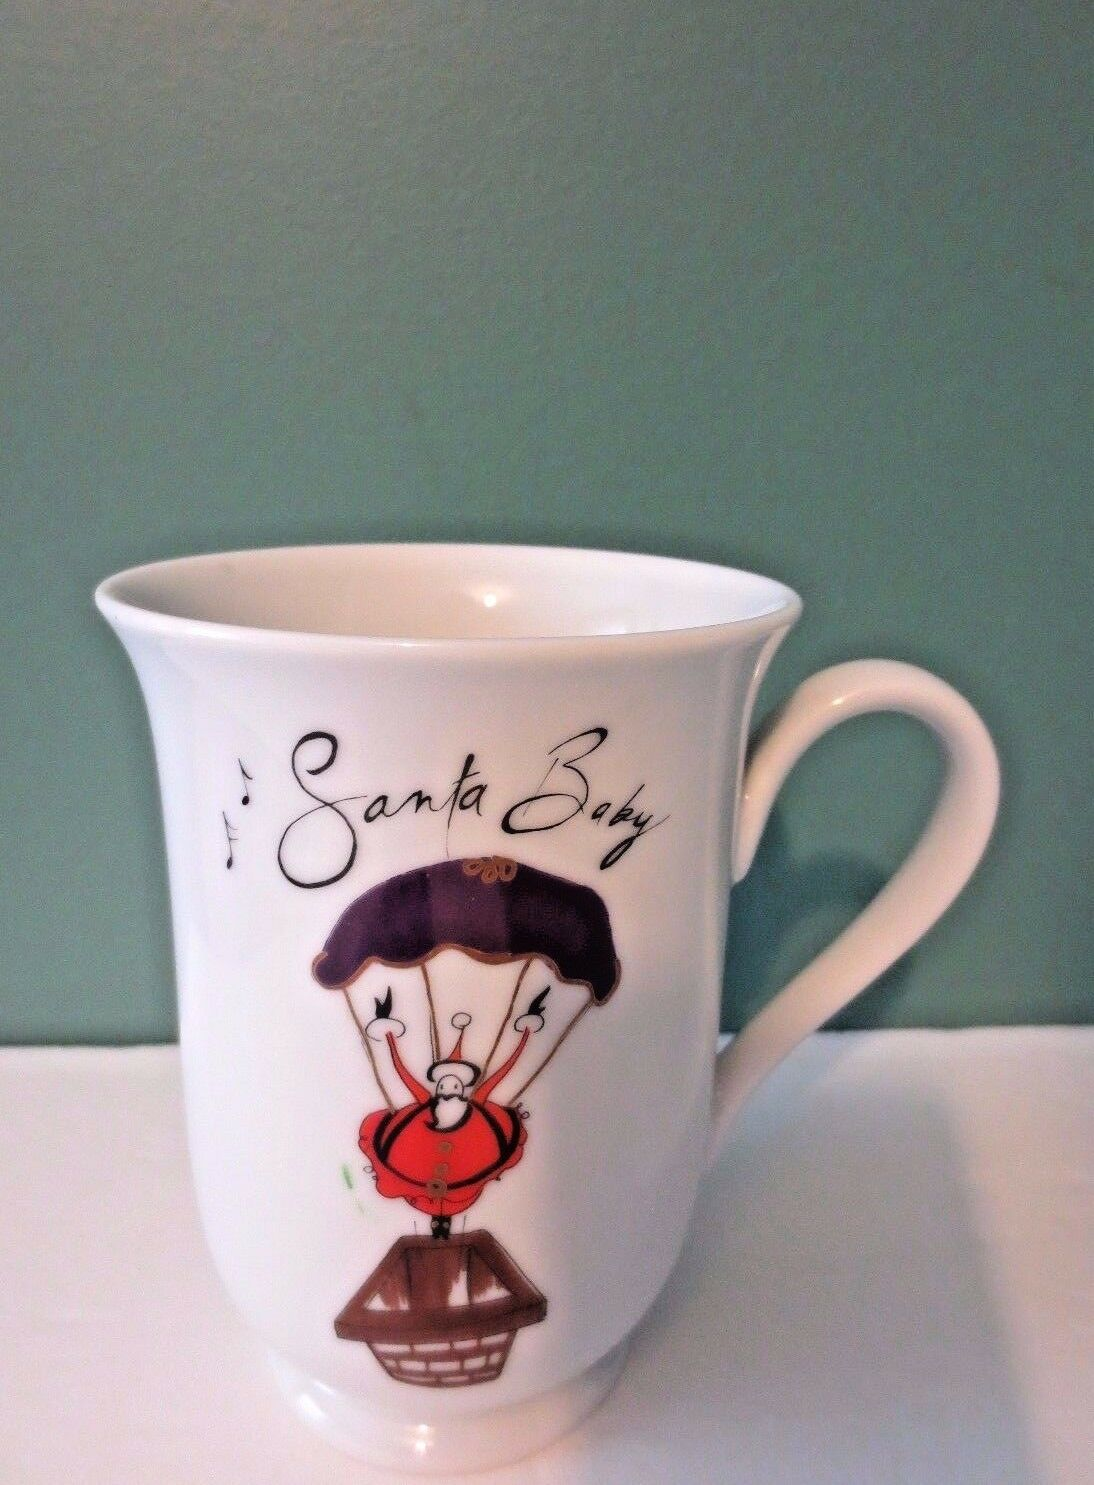 Awesome NEW Set of  8 Footed Footed Footed  SANTA BABY  Christmas Coffee Mugs by  POTTERY BARN f213dc